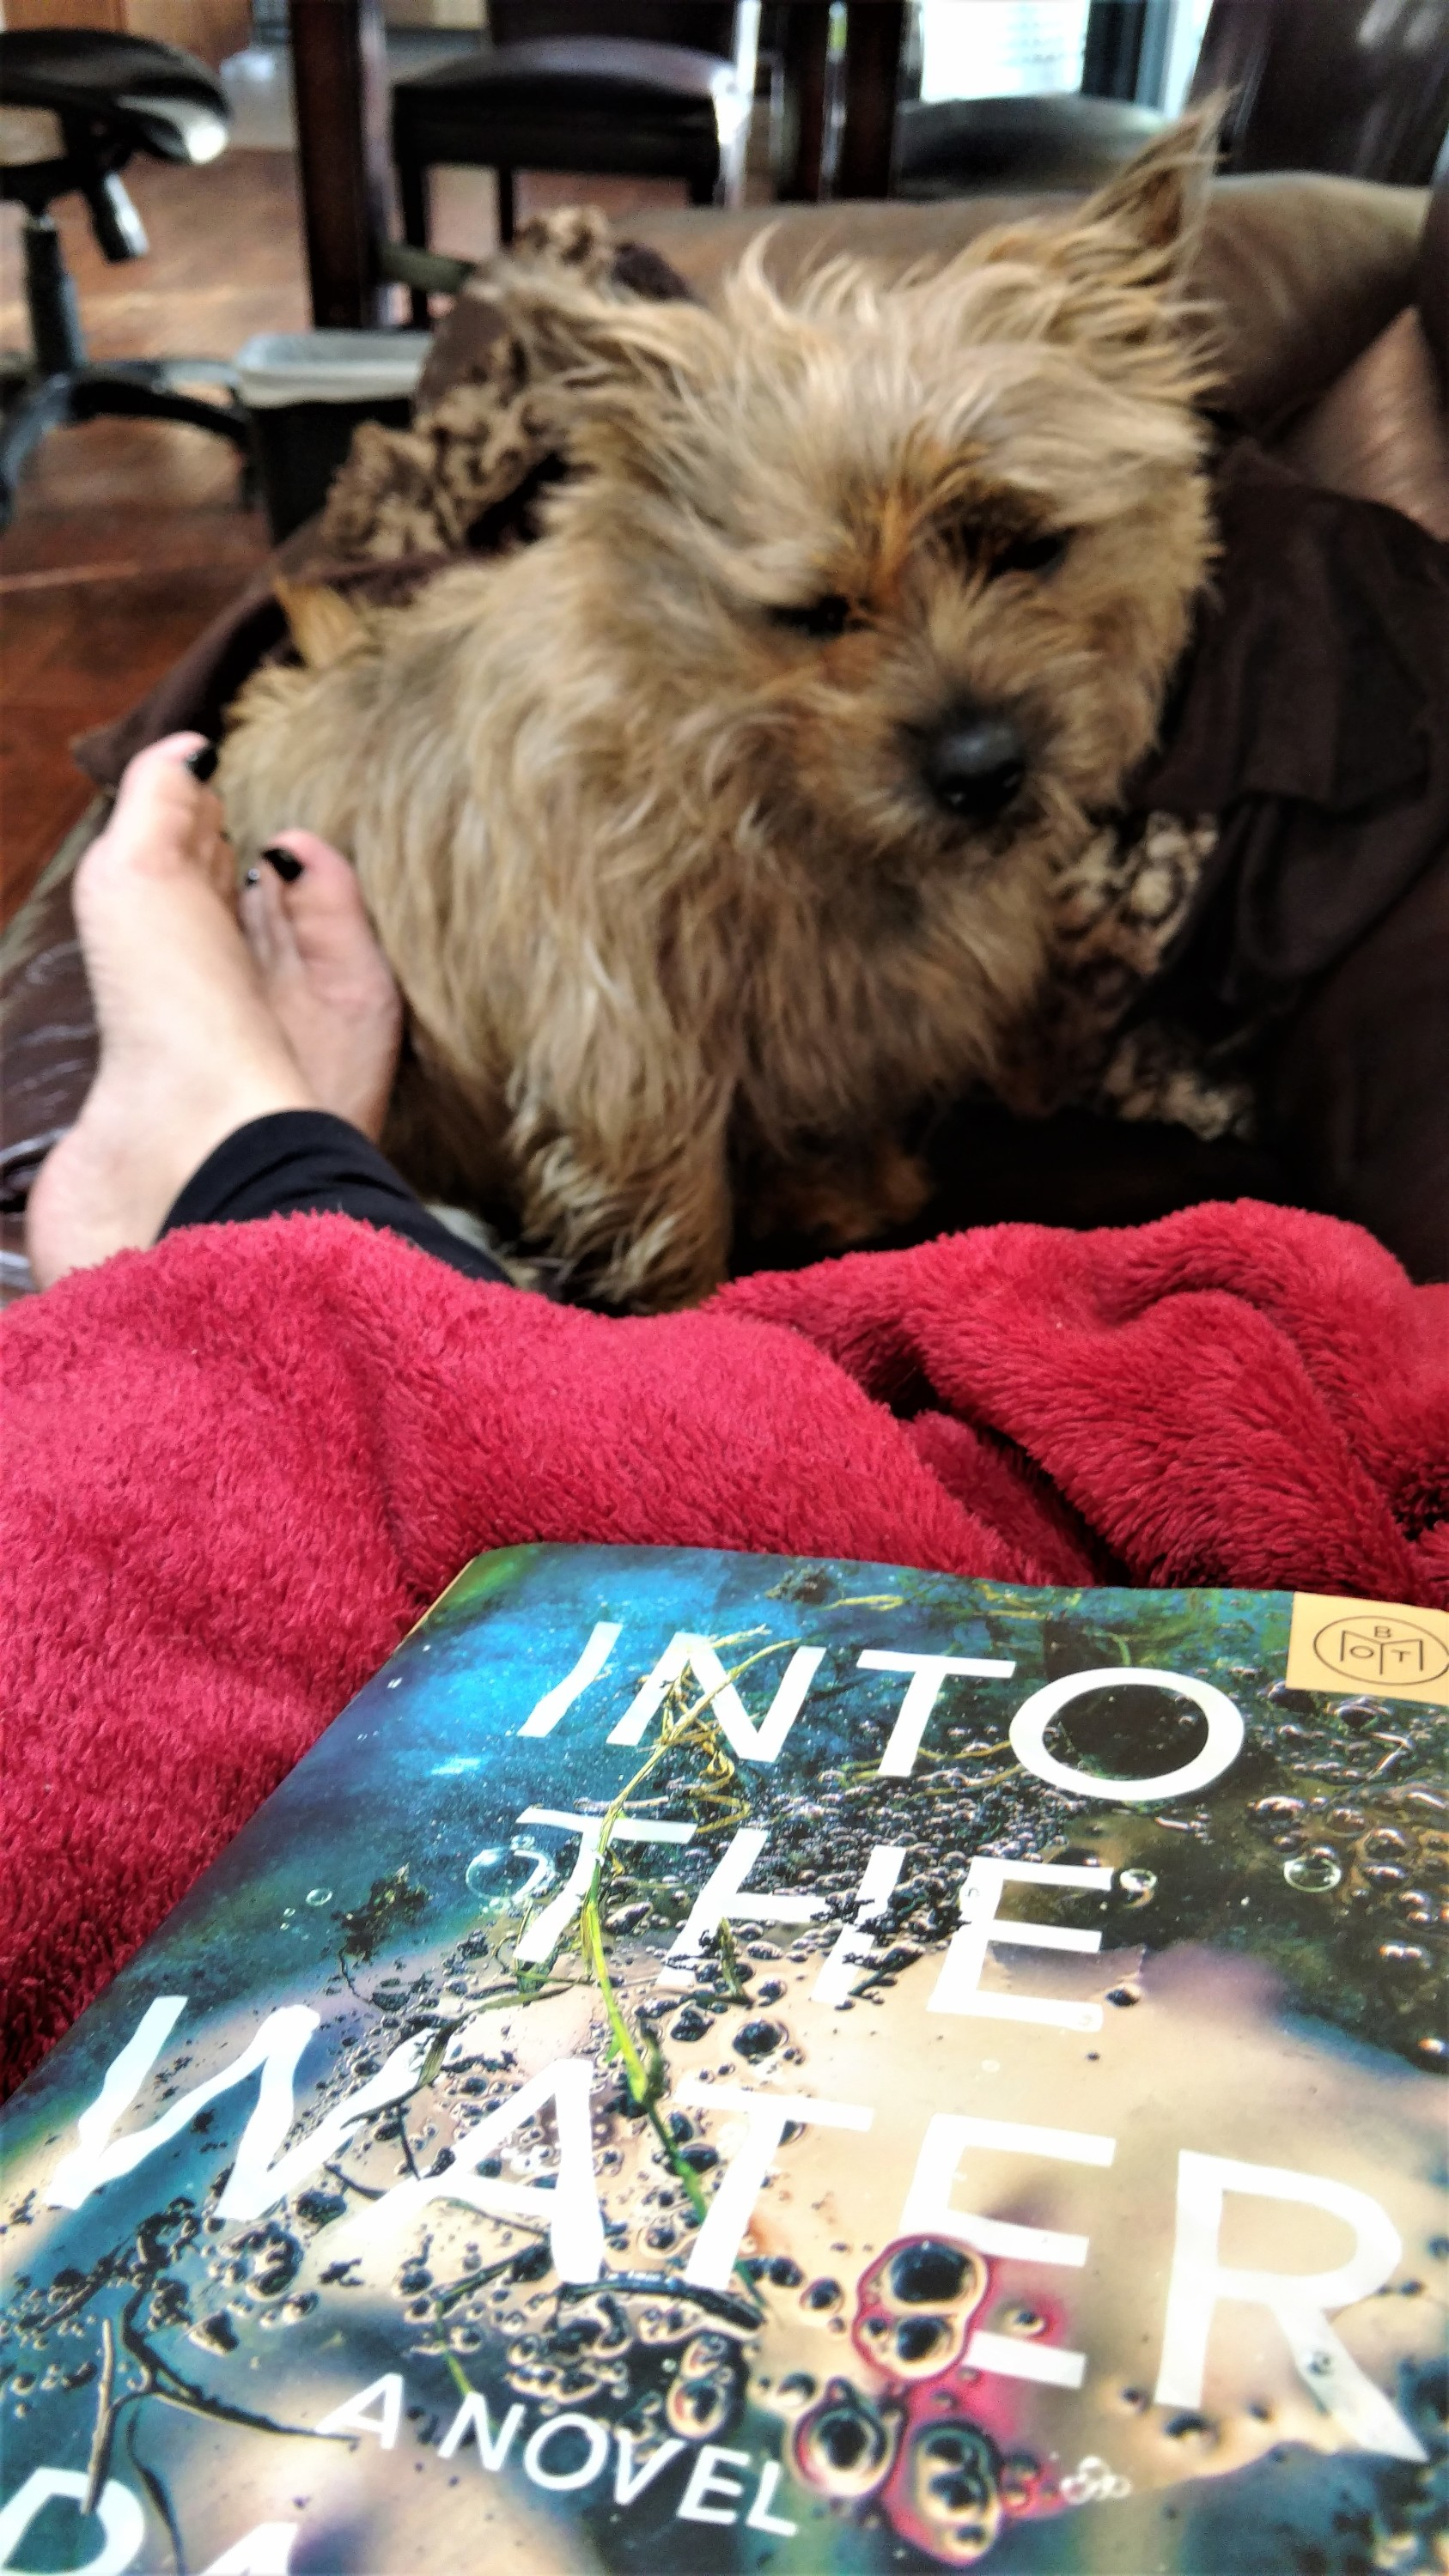 Into the water, Paula Hawkins, Cairn Terrier, Reading, Lazy Sunday